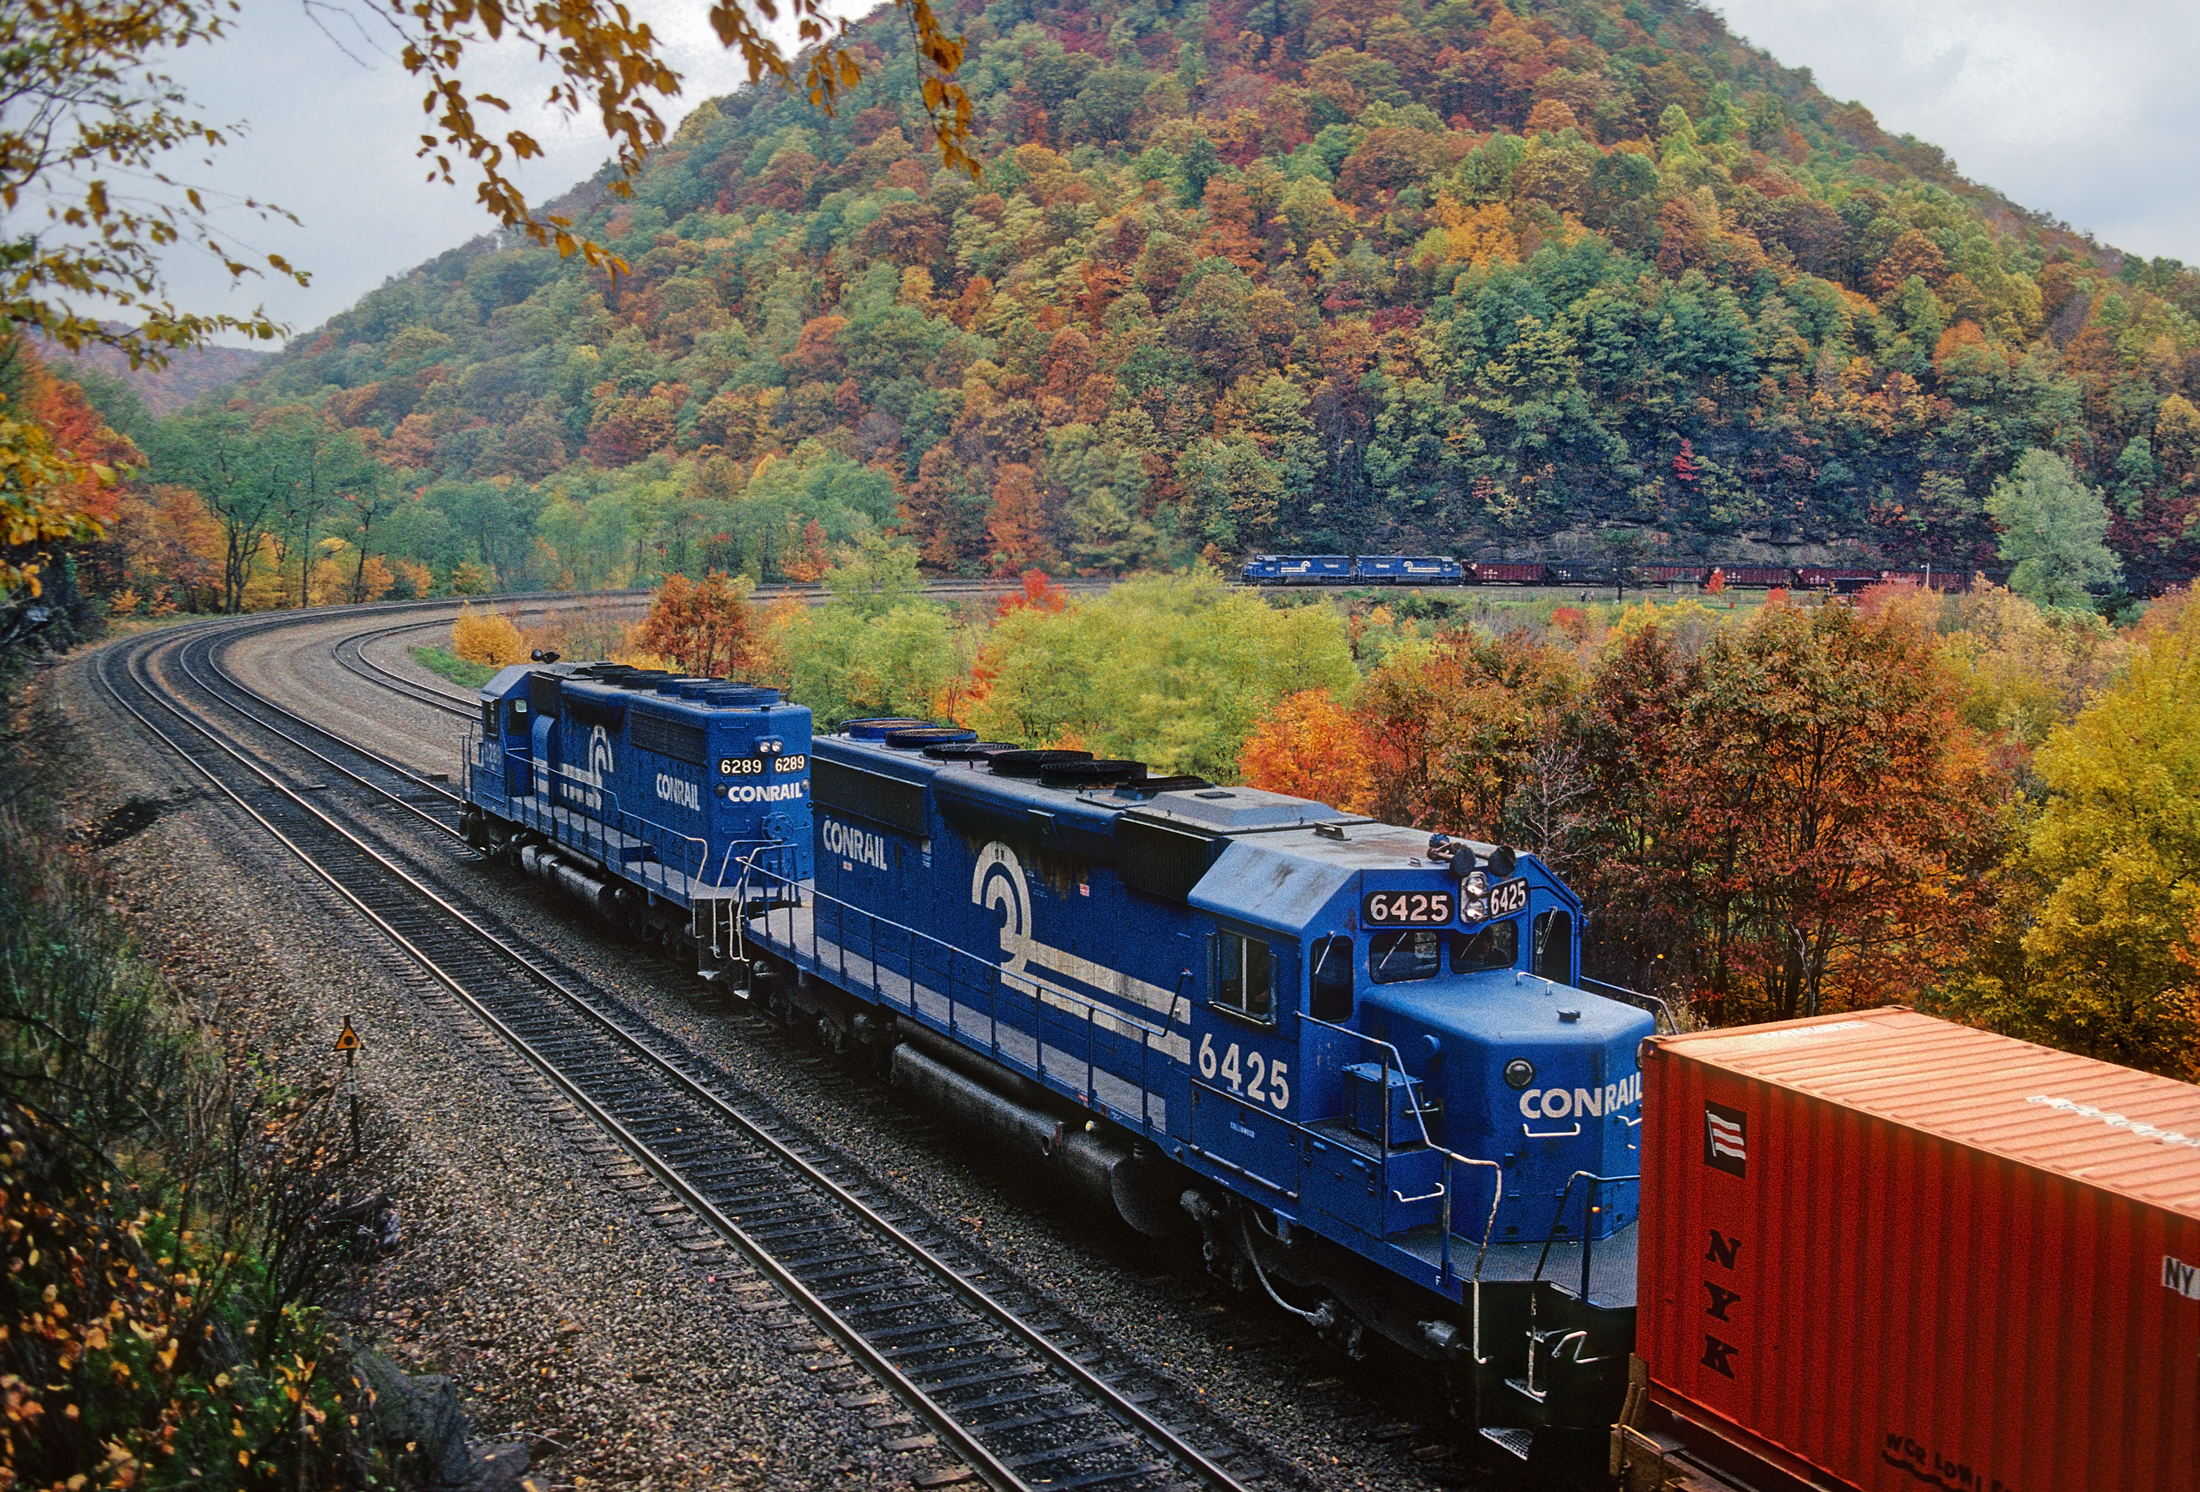 Two Conrail trains part ways at iconic Horseshoe Curve west of Altoona, Pennsylvania on the former Pennsylvania Railroad main line over the Alleghenies, October 21, 1988. Image courtesy of  Mike Danneman